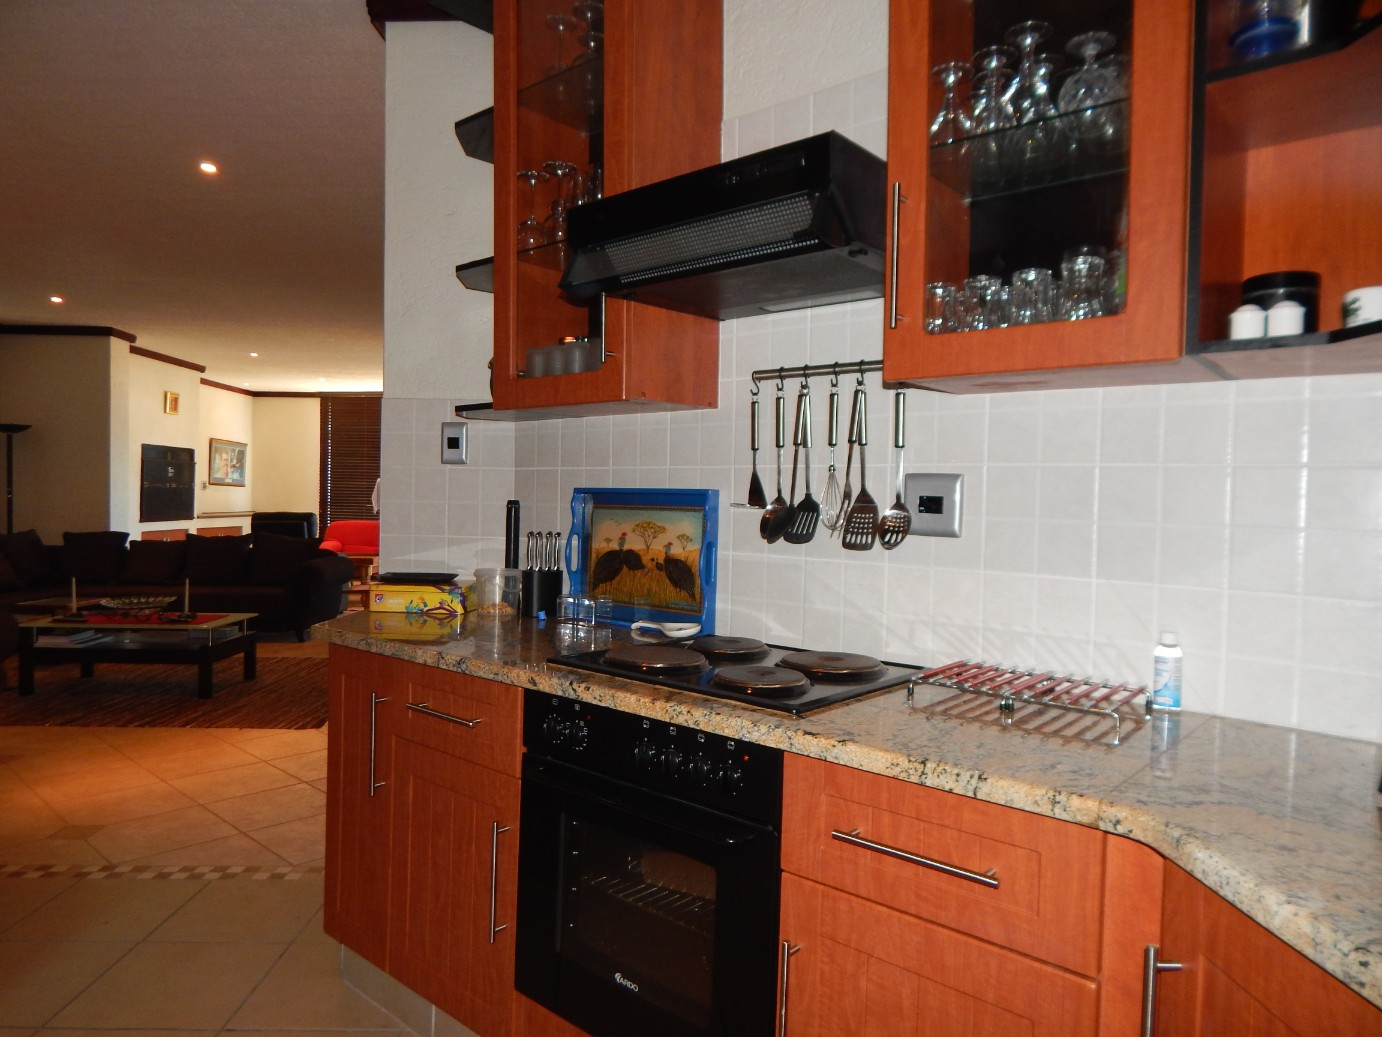 3 Bedroom Apartment for sale in Diaz Beach ENT0043723 : photo#13